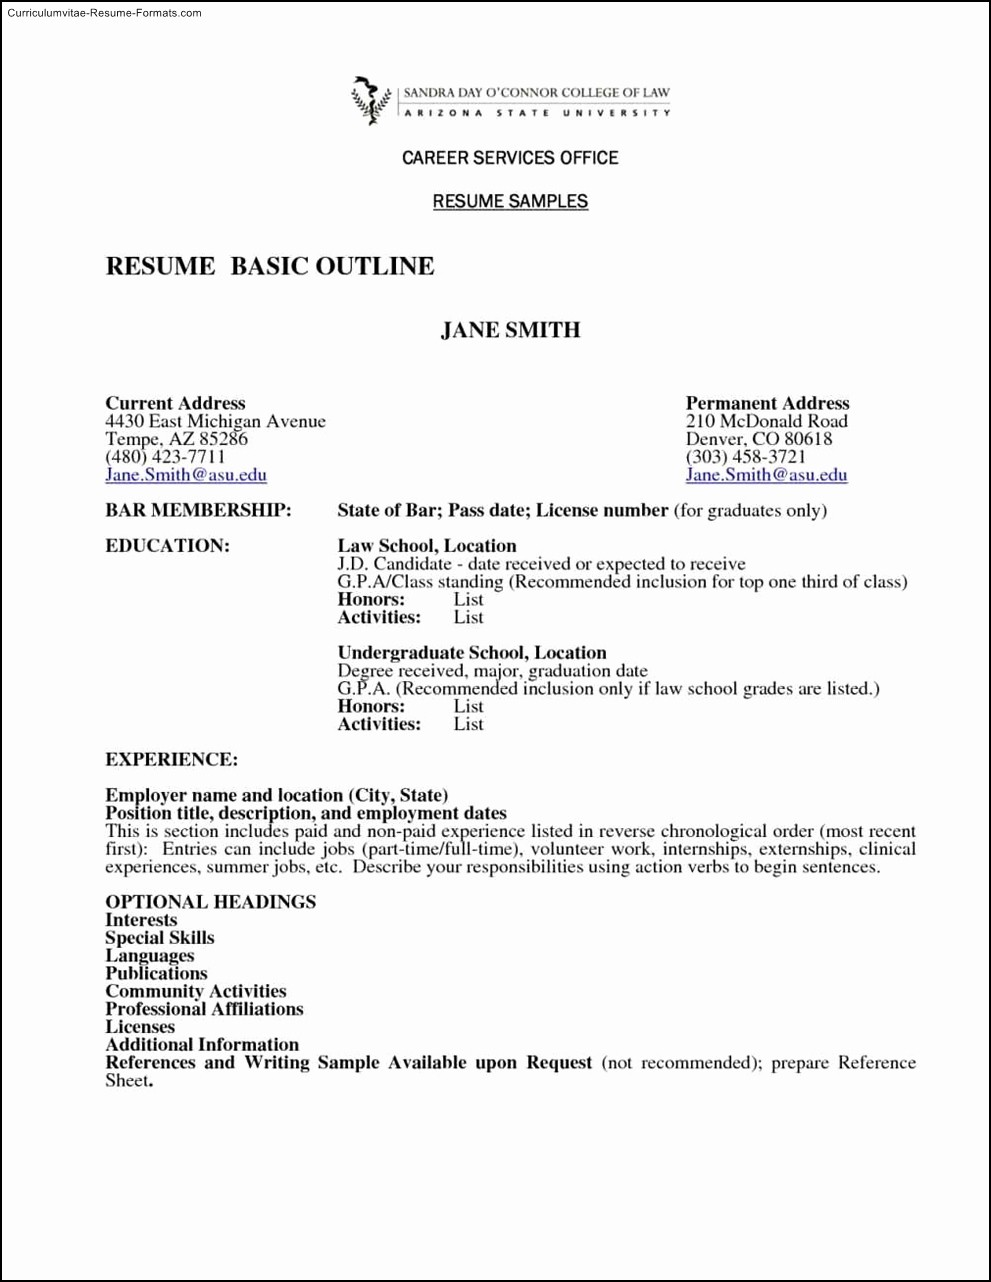 Samples Of A Basic Resume Luxury Basic Resume Template Australia Free Samples Examples